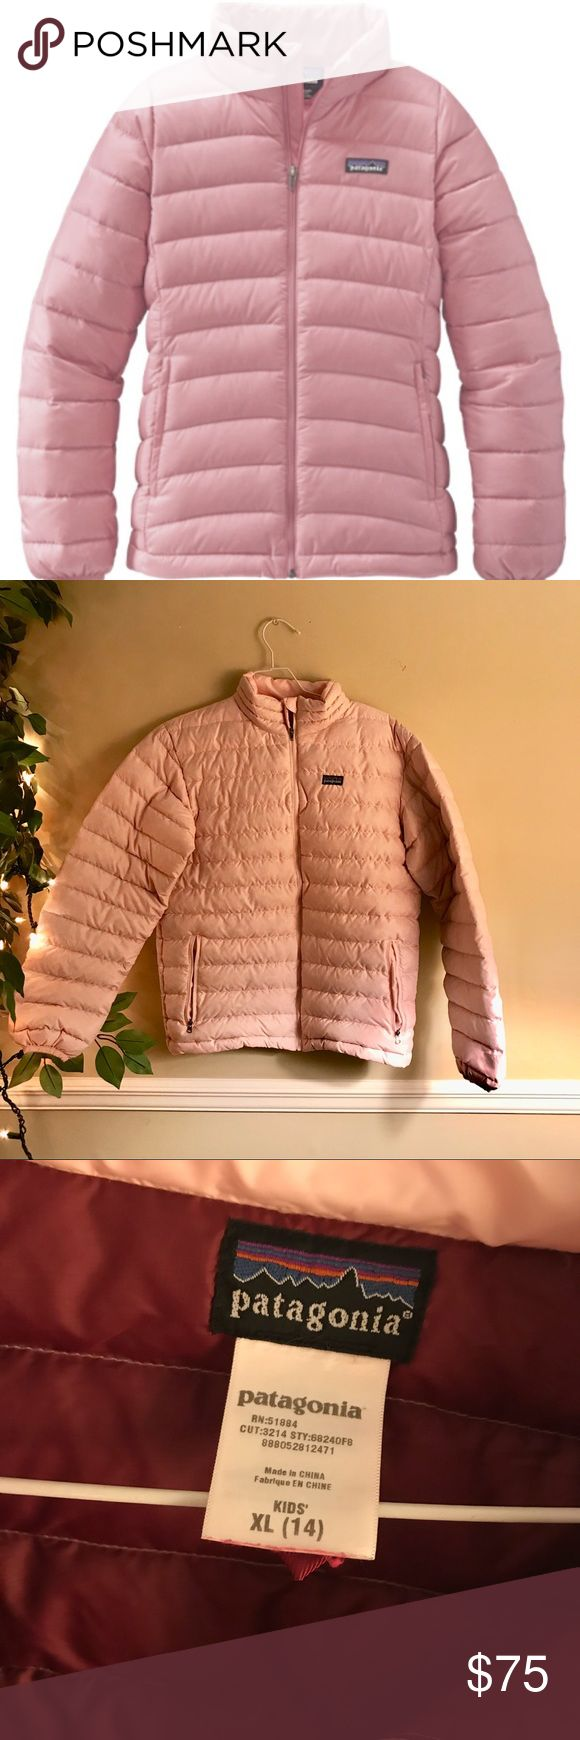 Patagonia light pink down feather winter coat Patagonia light pink colored down feather puffer winter zip up jacket. The lining is a burgundy color. This jacket is essential for cold outings! Pristine condition other than one flaw which is pictured; on the back of the coat there is a tiny hole which could be fixable. These jackets are made for the cold and made to be extremely durable. Clean and comes from smoke free home. size kids XL but I'm a size XS/S and this fit me just fine. Patagonia…